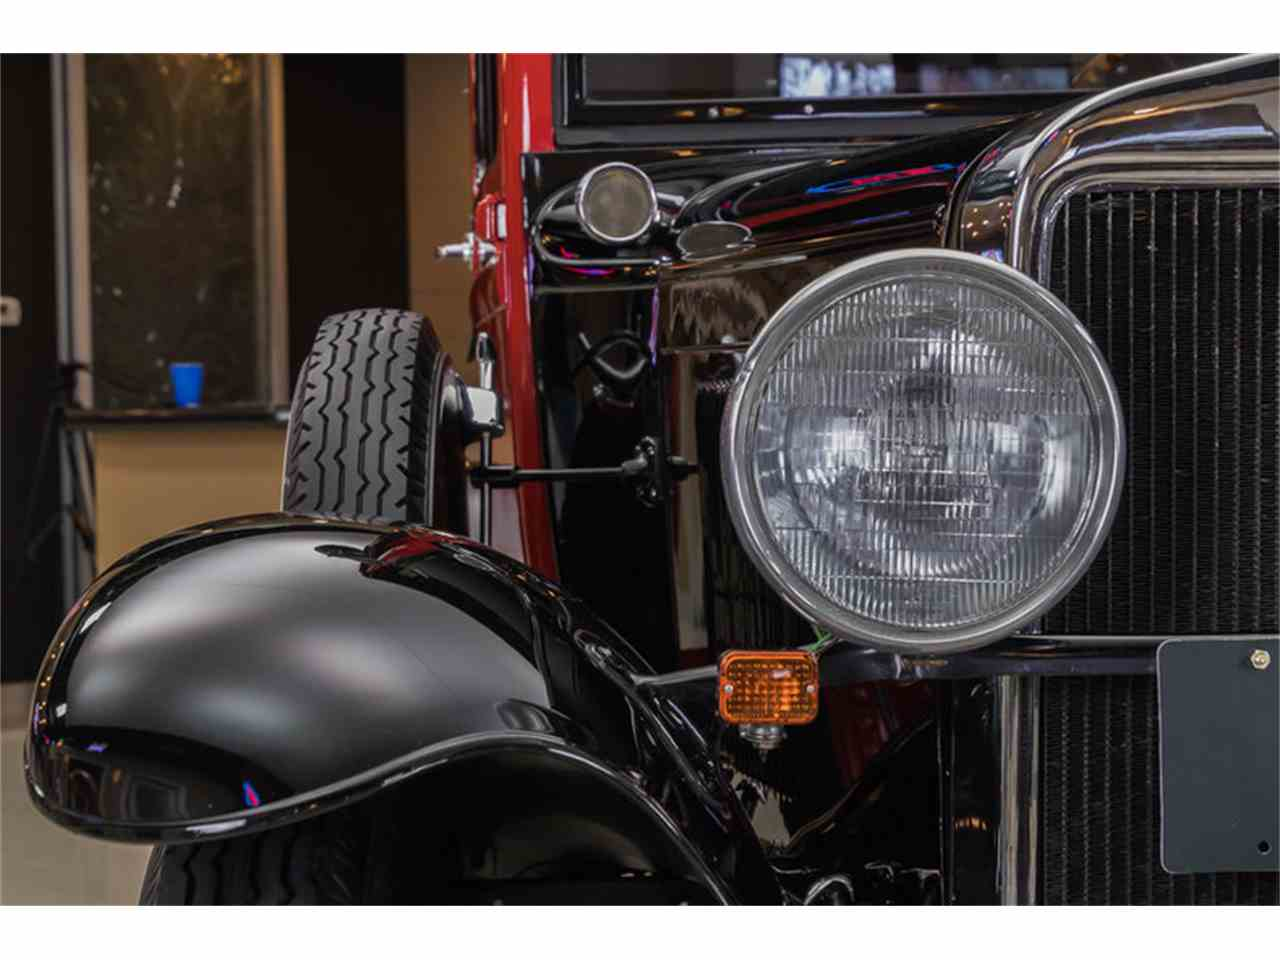 Large Picture of '30 Chevrolet Huckster Truck located in Michigan - $49,900.00 - L5ME